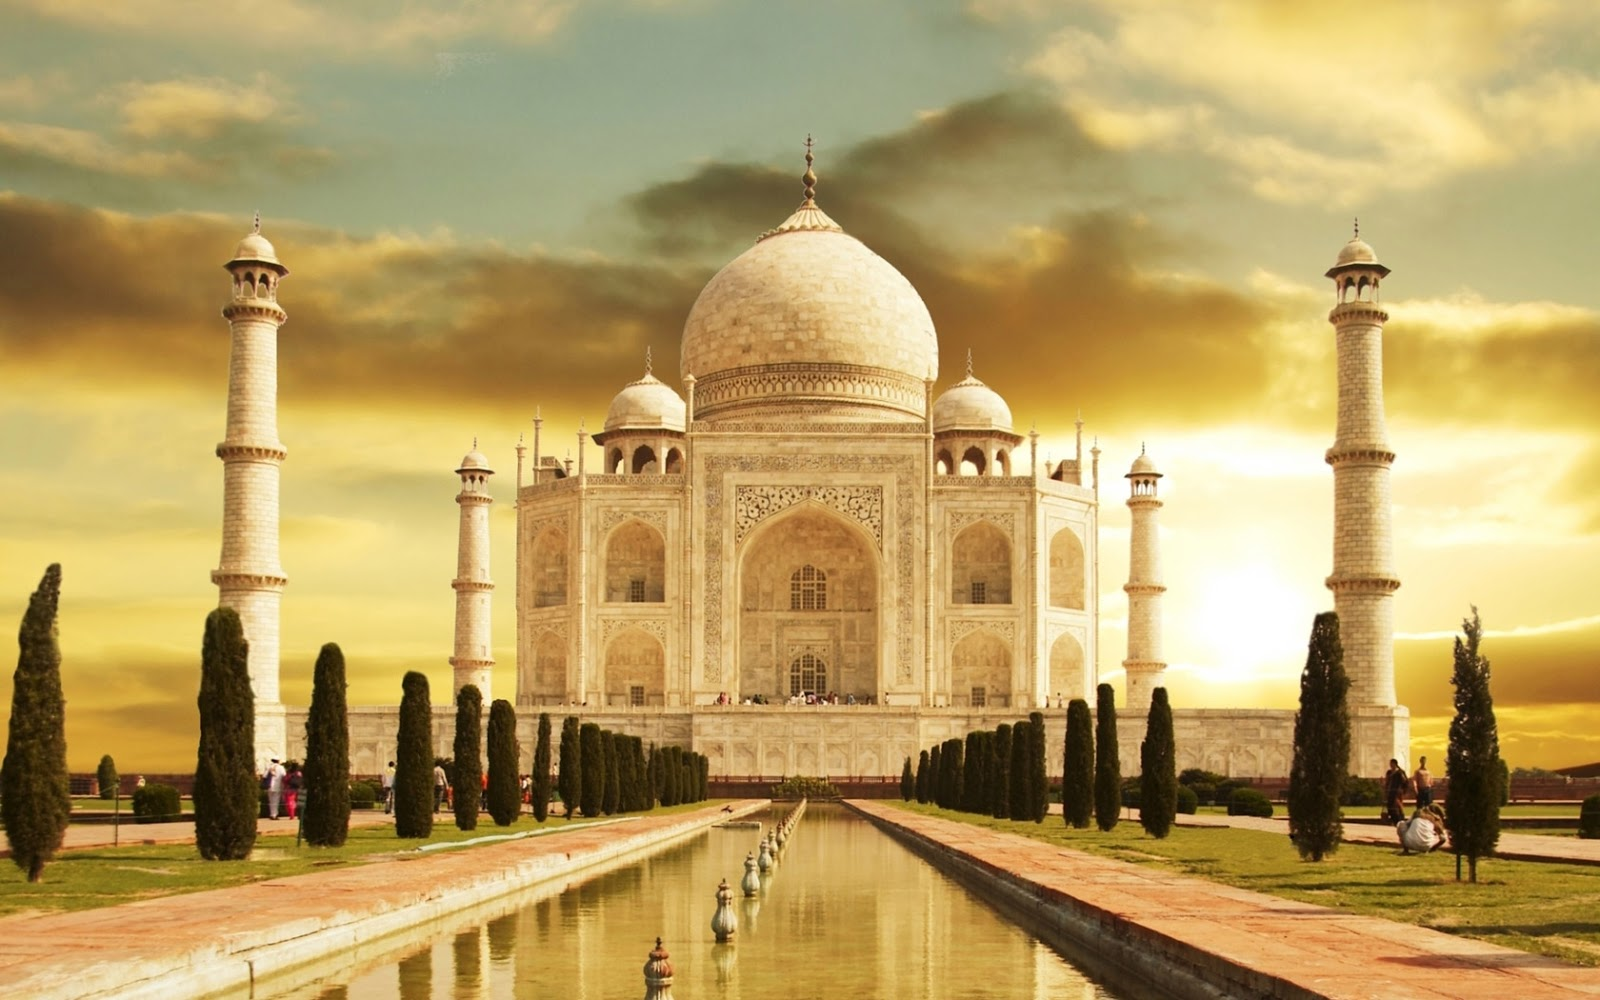 india 7wonder of the world taj mahal full hd wallpapers 1080p free